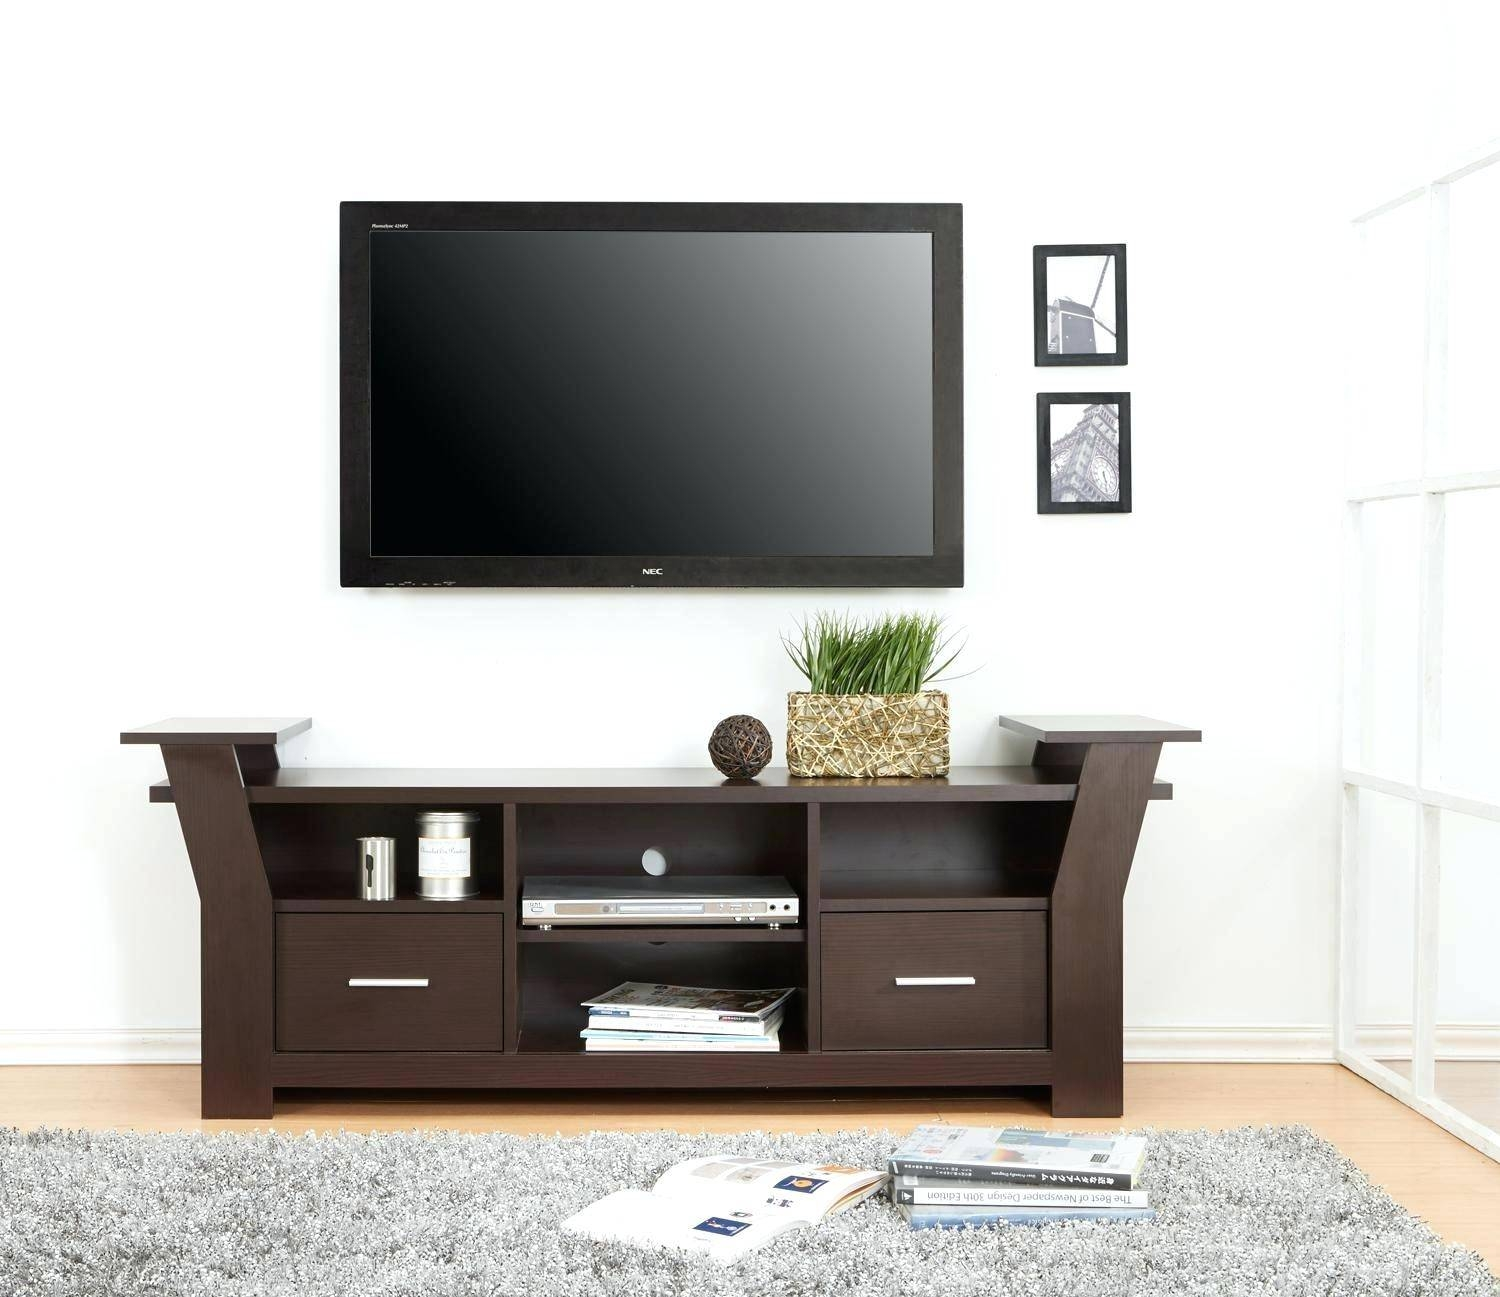 Tv Stand: Amazing Tv Stand With Storage Design. Tv Stand With pertaining to Tv Stands With Storage Baskets (Image 13 of 15)